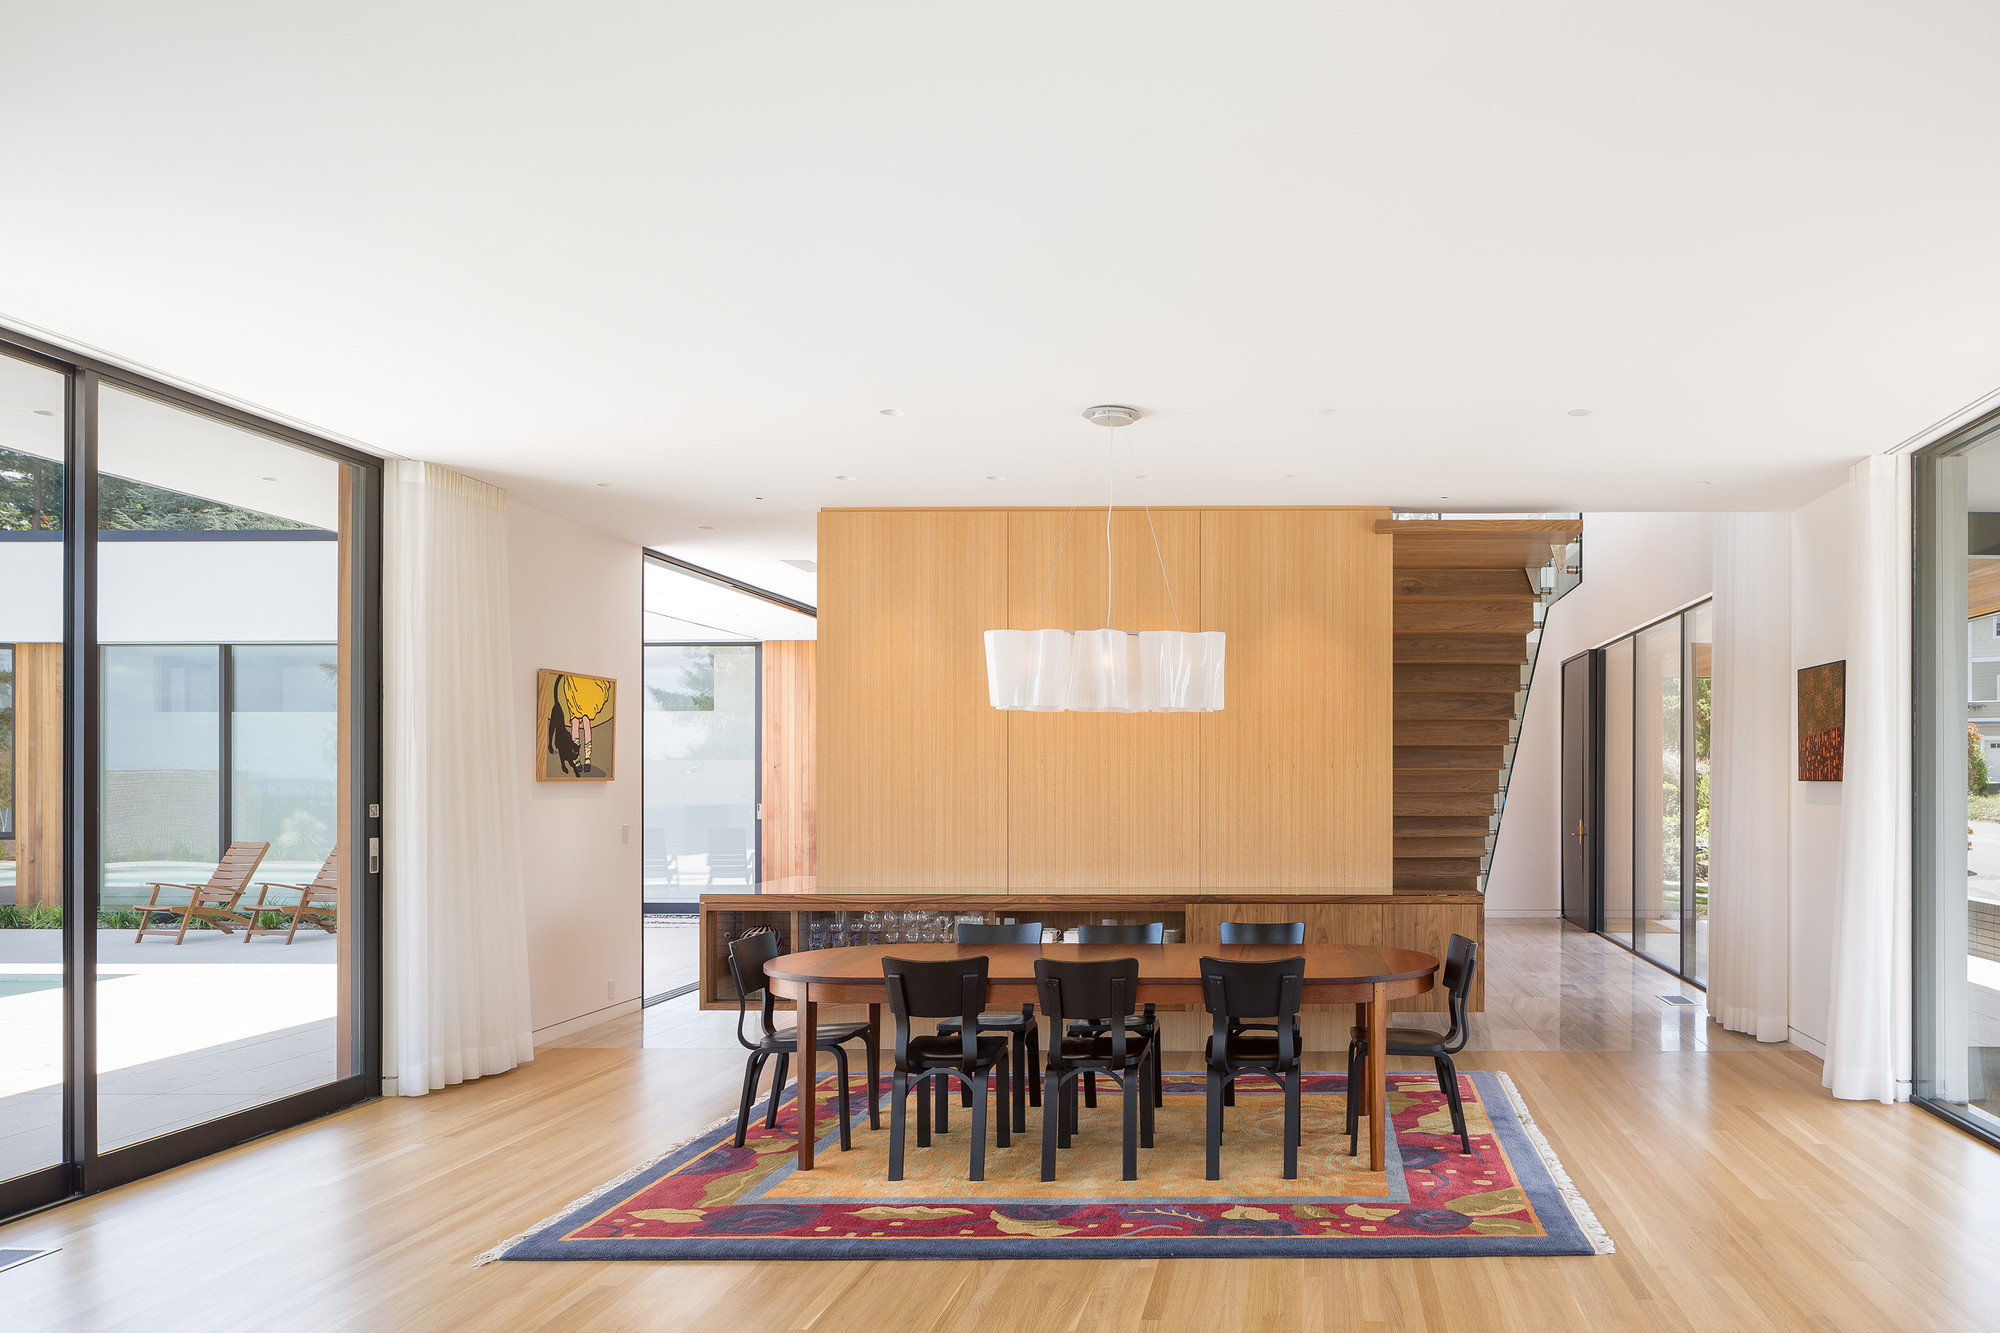 Natural day-lighting and simplified, open space is conductive to good air circulation and easy distribution of ventilation air: project by  ASH + ASH / Hennebery Eddy Architects  © Josh Partee